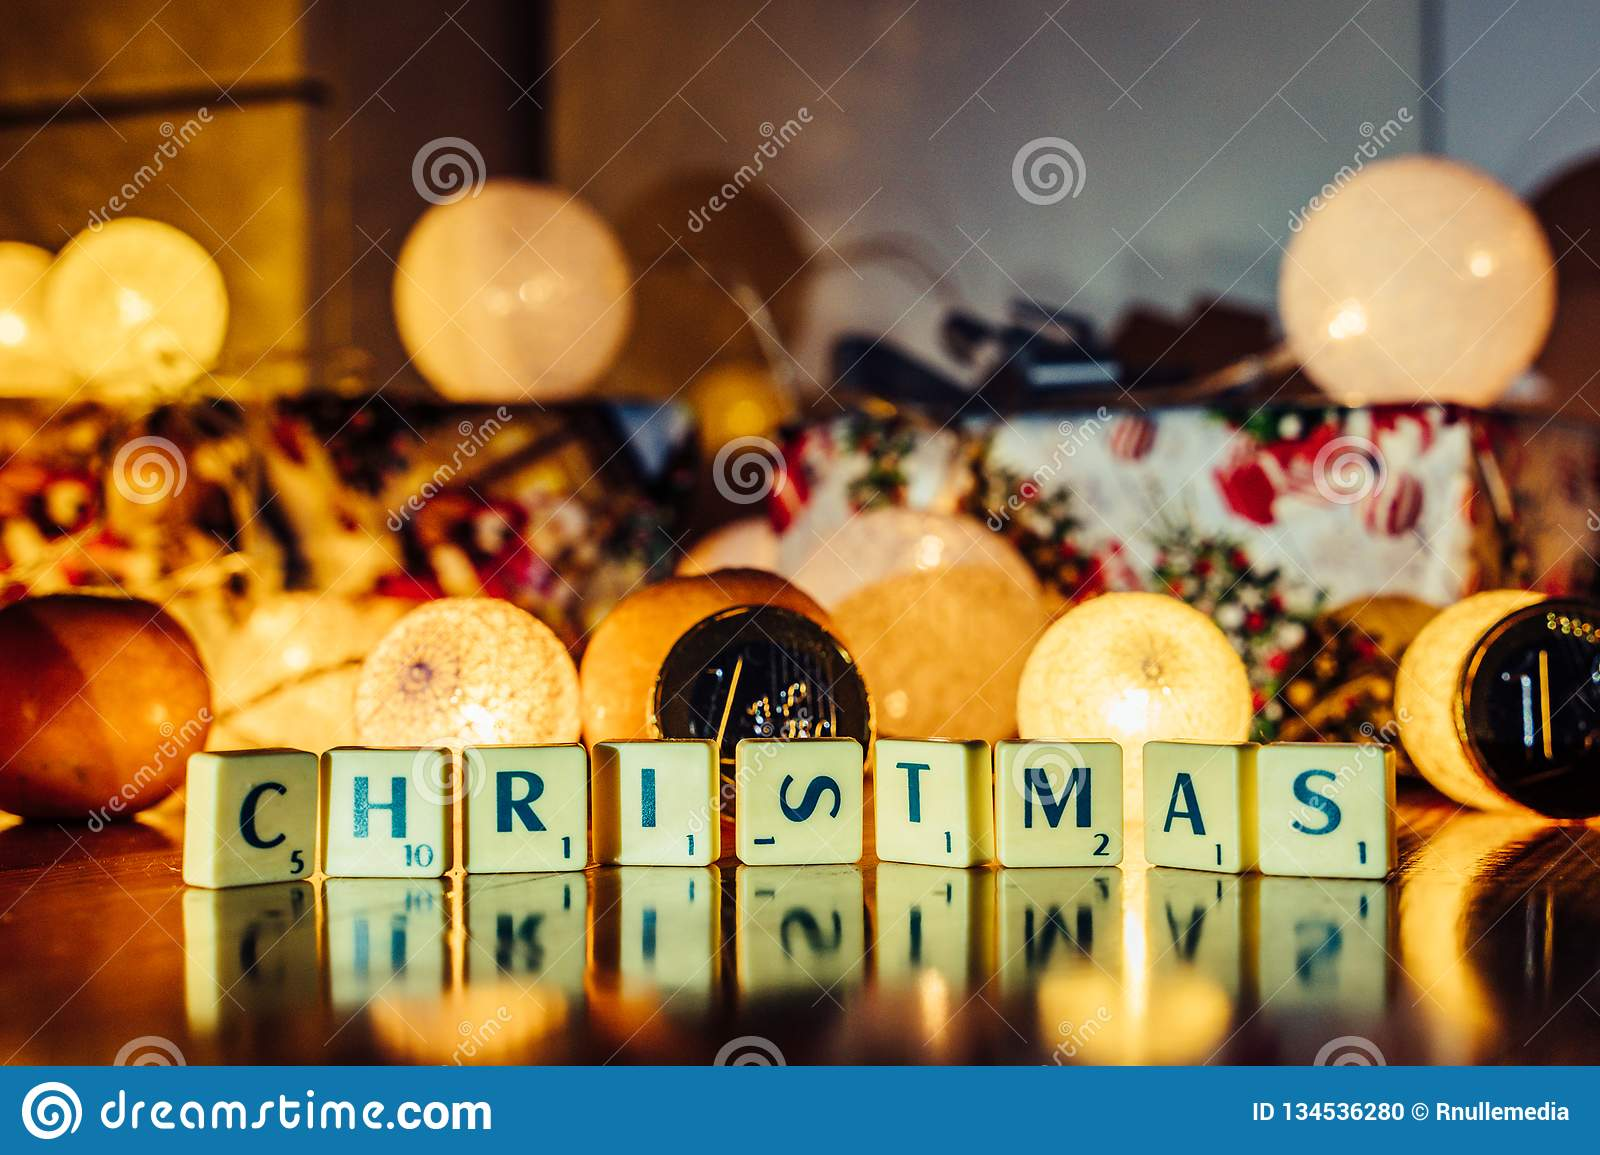 Word \'Christmas\' set on the Wooden Background from Letters of Board Game With the Blurred Christmas Lights, Fruits and Presents. In the Background together stock photo